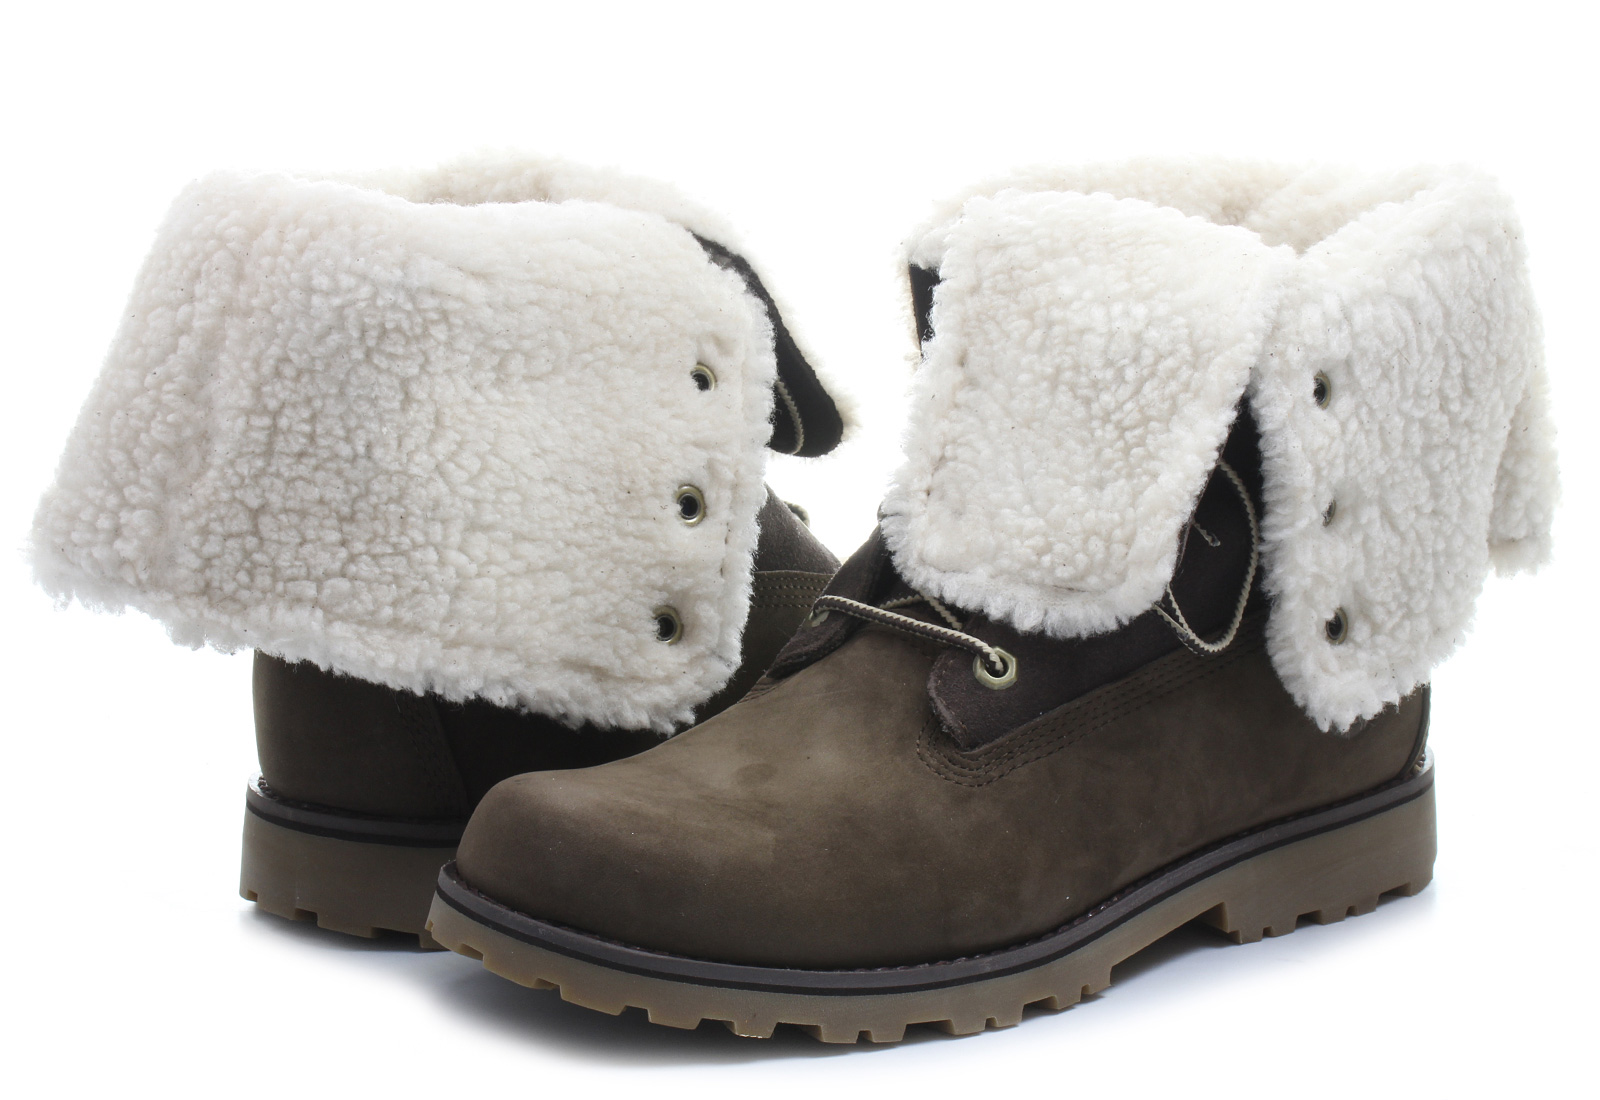 Timberland Boots 6 inch Shearling Boot